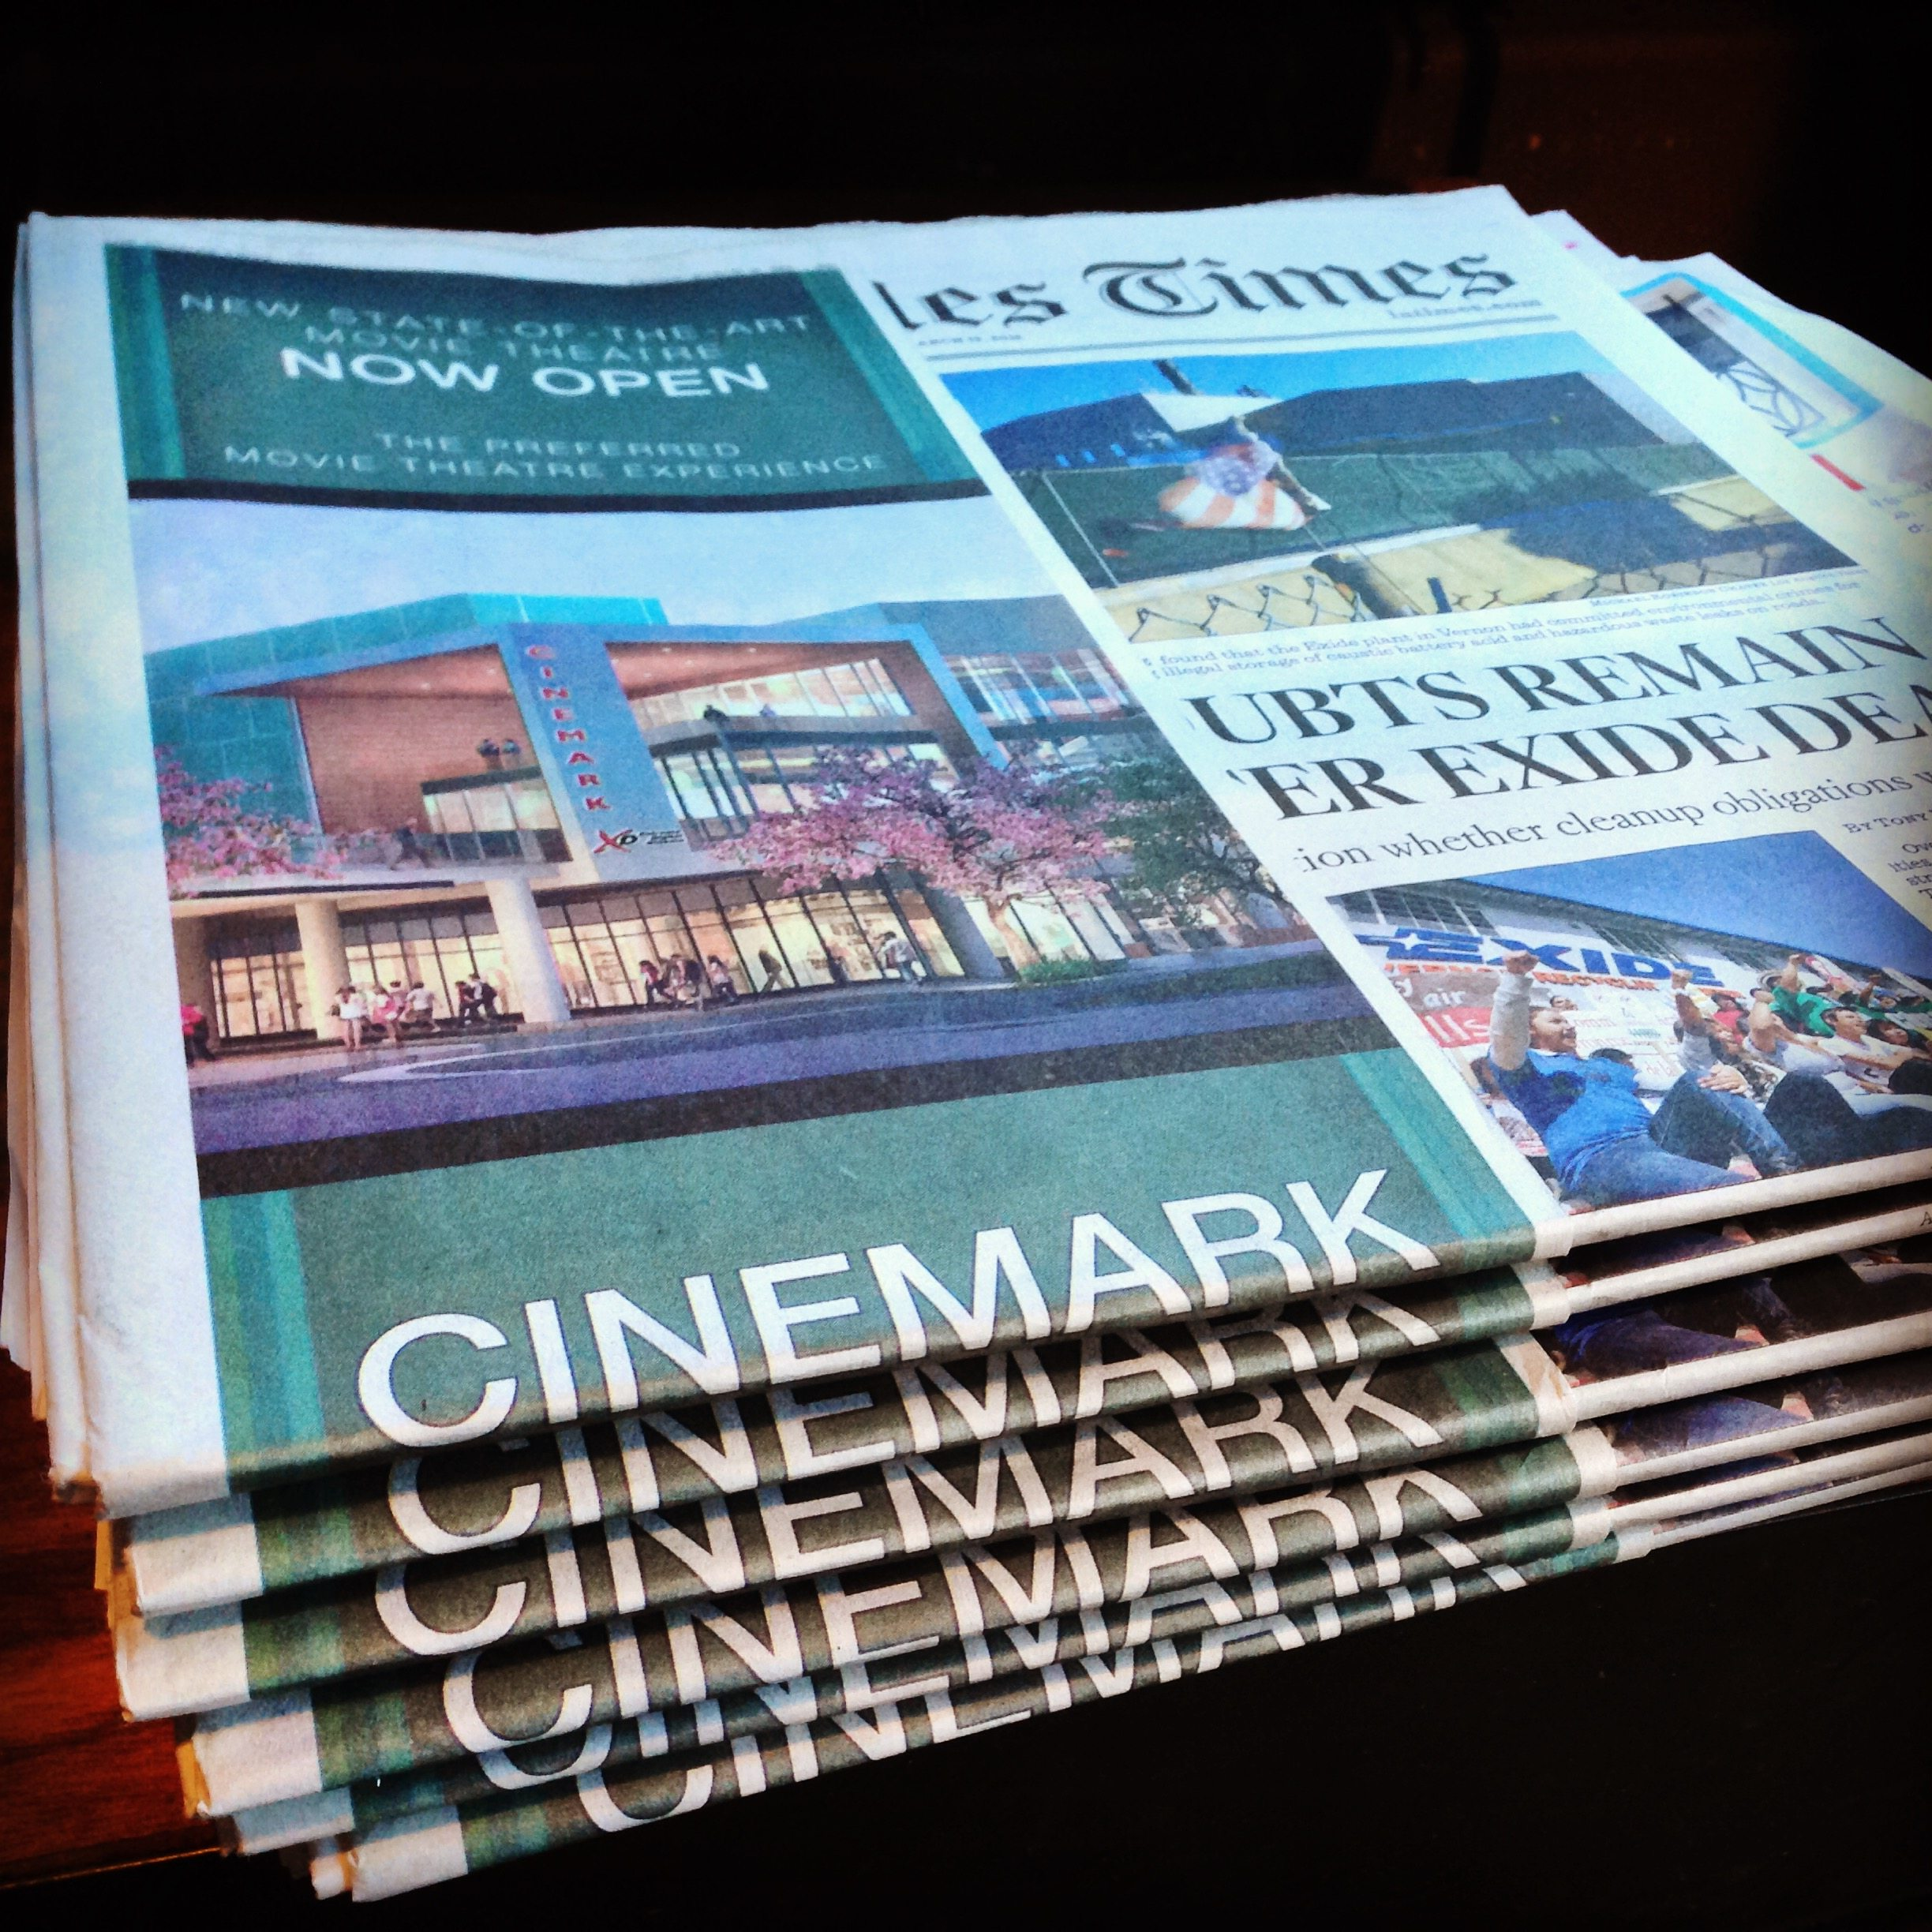 Los Angeles Times Ad for Cinemark Playa Vista